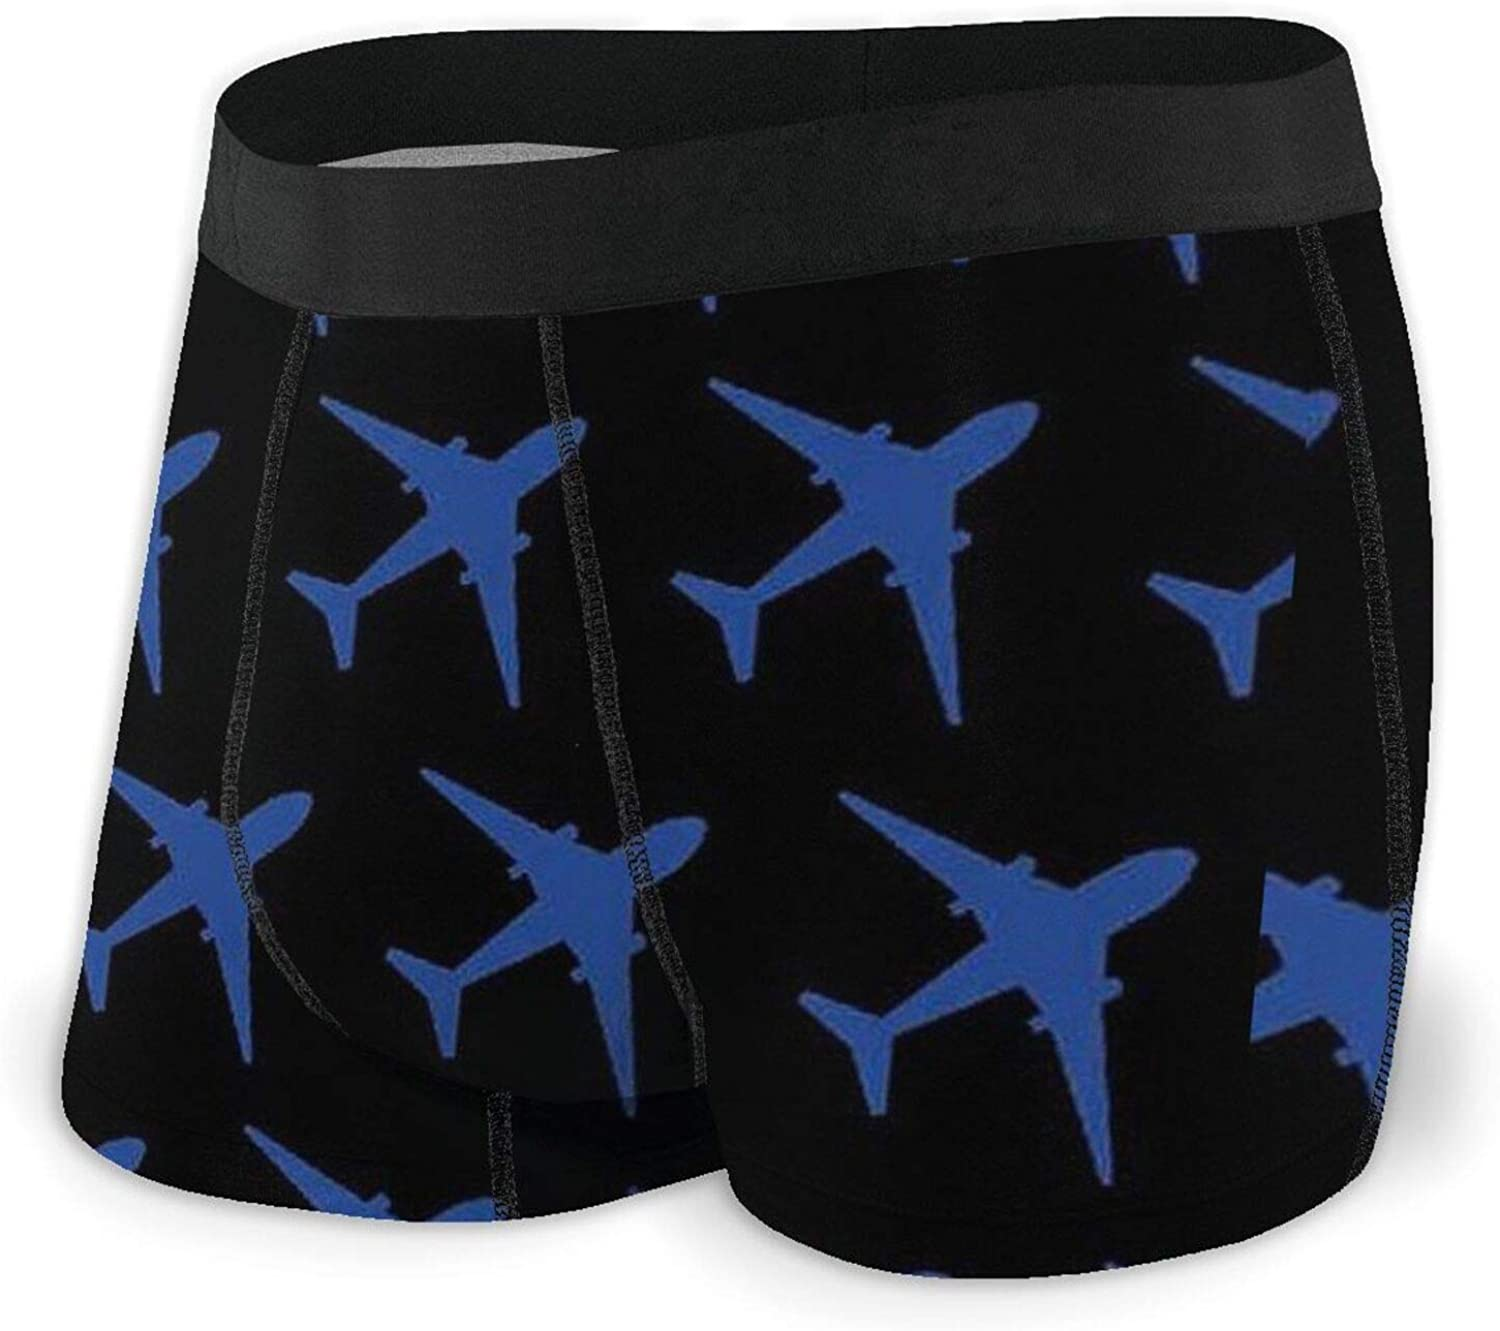 Man's Boxer Brief, Lighthouse and Airplane Soft Panty with Elastic Waistband Sport Performance Underwear